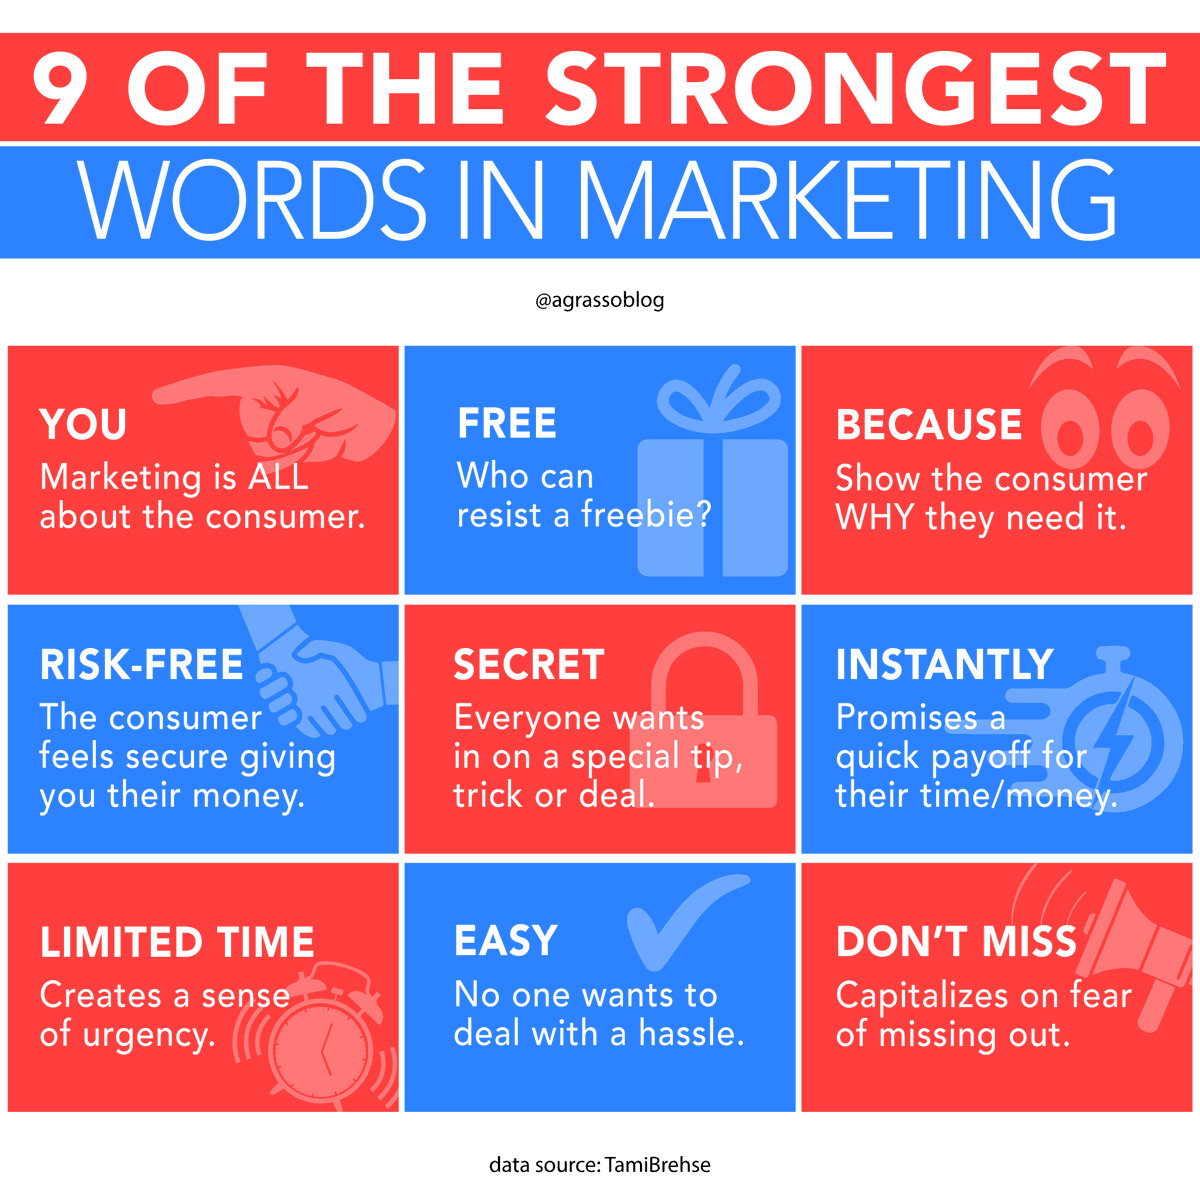 9 of the strongest words in #Marketing